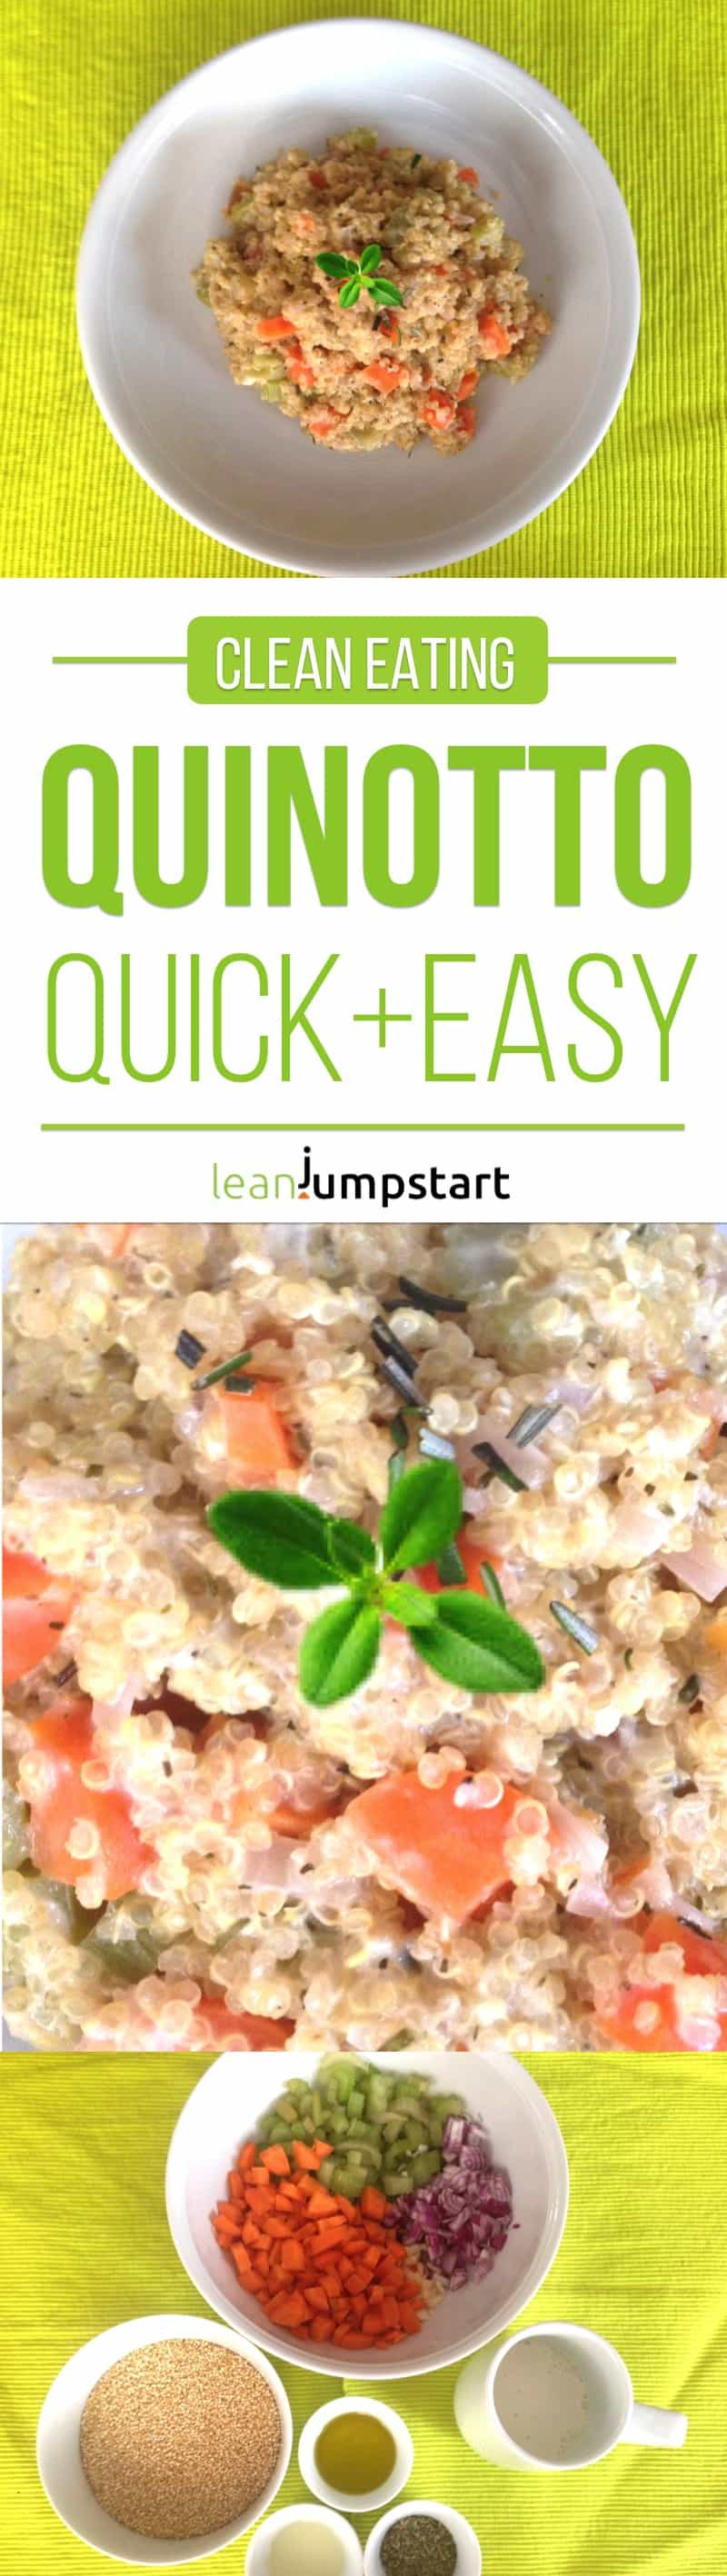 clean eating quinotto: grab this quick and easy quinoa risotto recipe!